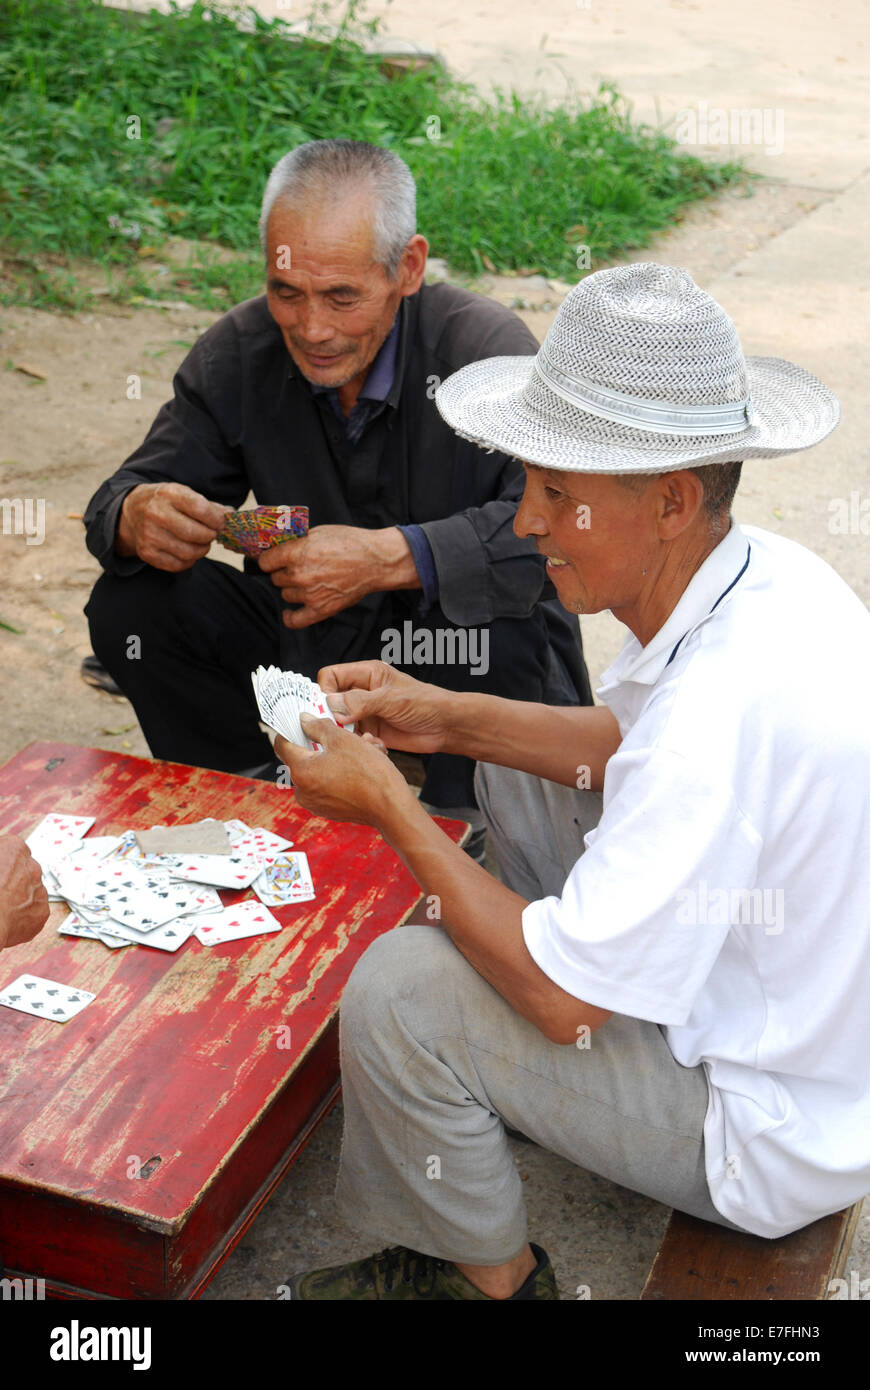 Les chinois jouent aux cartes, Beijing, China 2014 Photo Stock